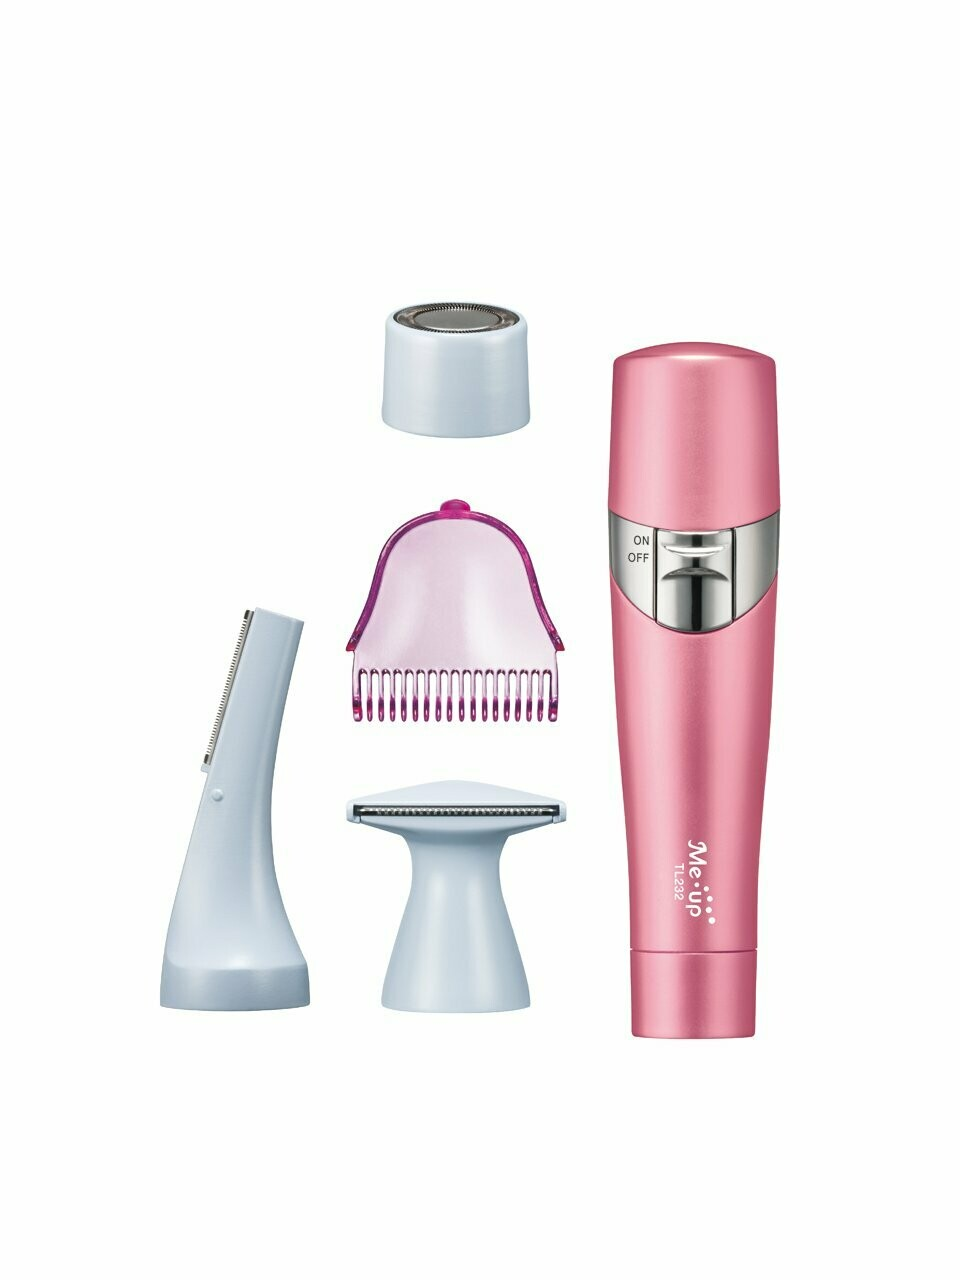 TESCOM Me.up Face & Body Shaver